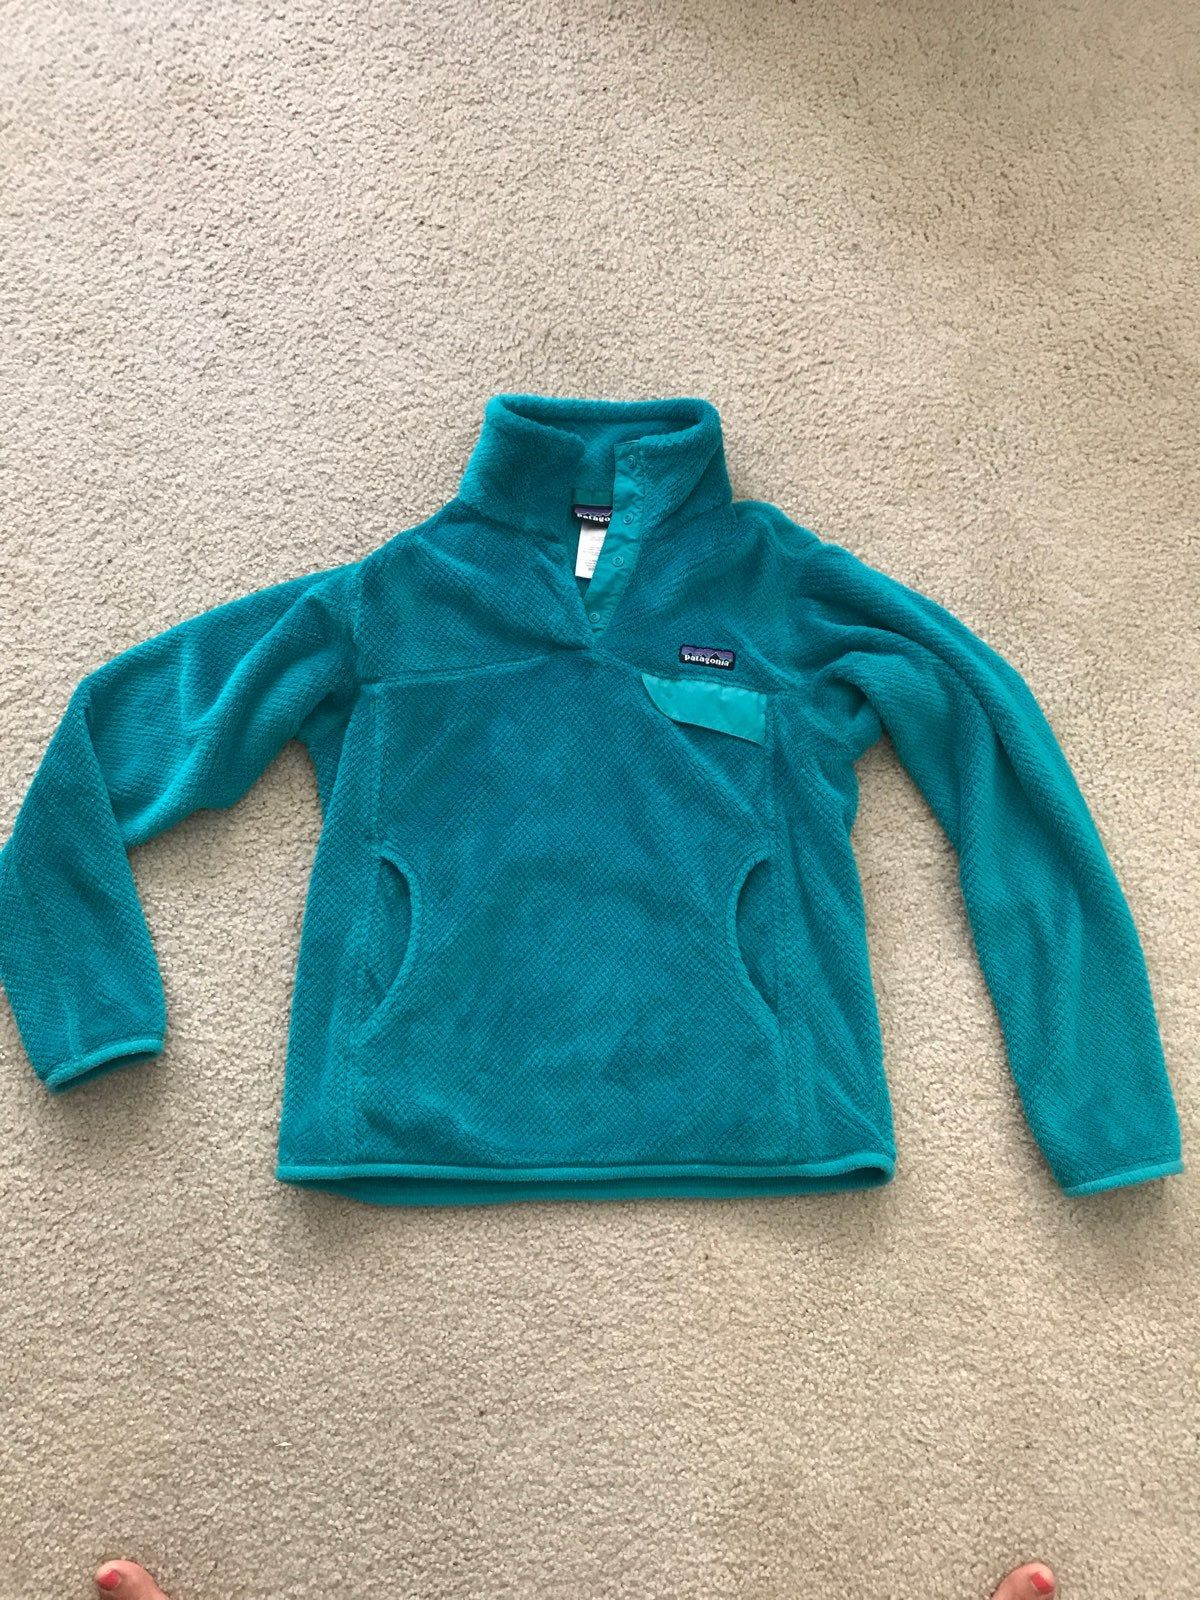 119 Online 10 Tax 130 Retail Buying Secondhand Is Better For The Planet And Your Wallet Lovely Lu Patagonia Fleece Jacket Fleece Jacket Fluffy Sweater